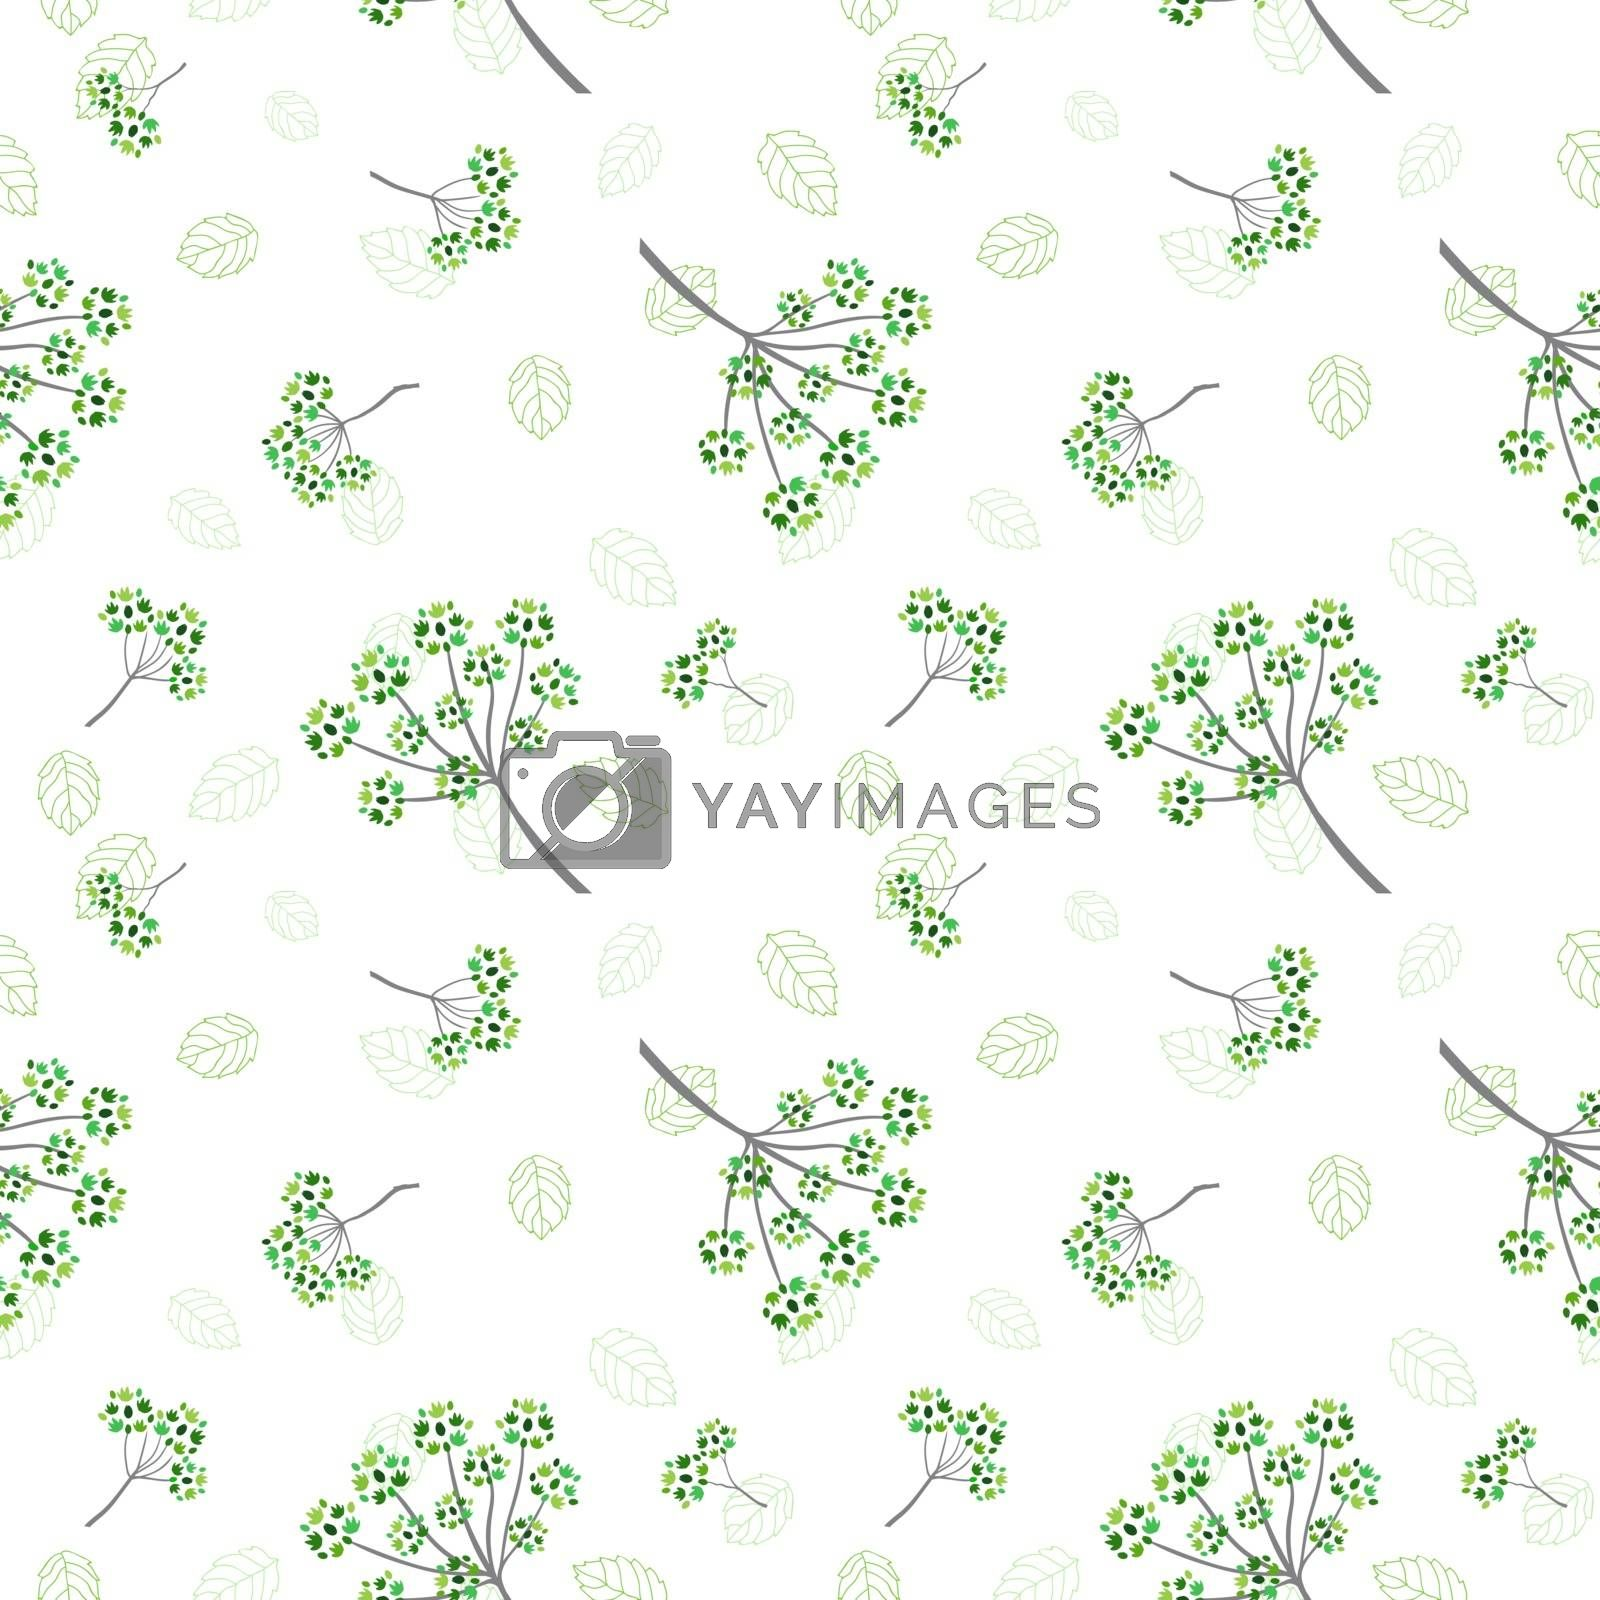 Monotone green flowers and leaves seamless pattern for decorative,fabric,textile,print or wallpaper by PIMPAKA